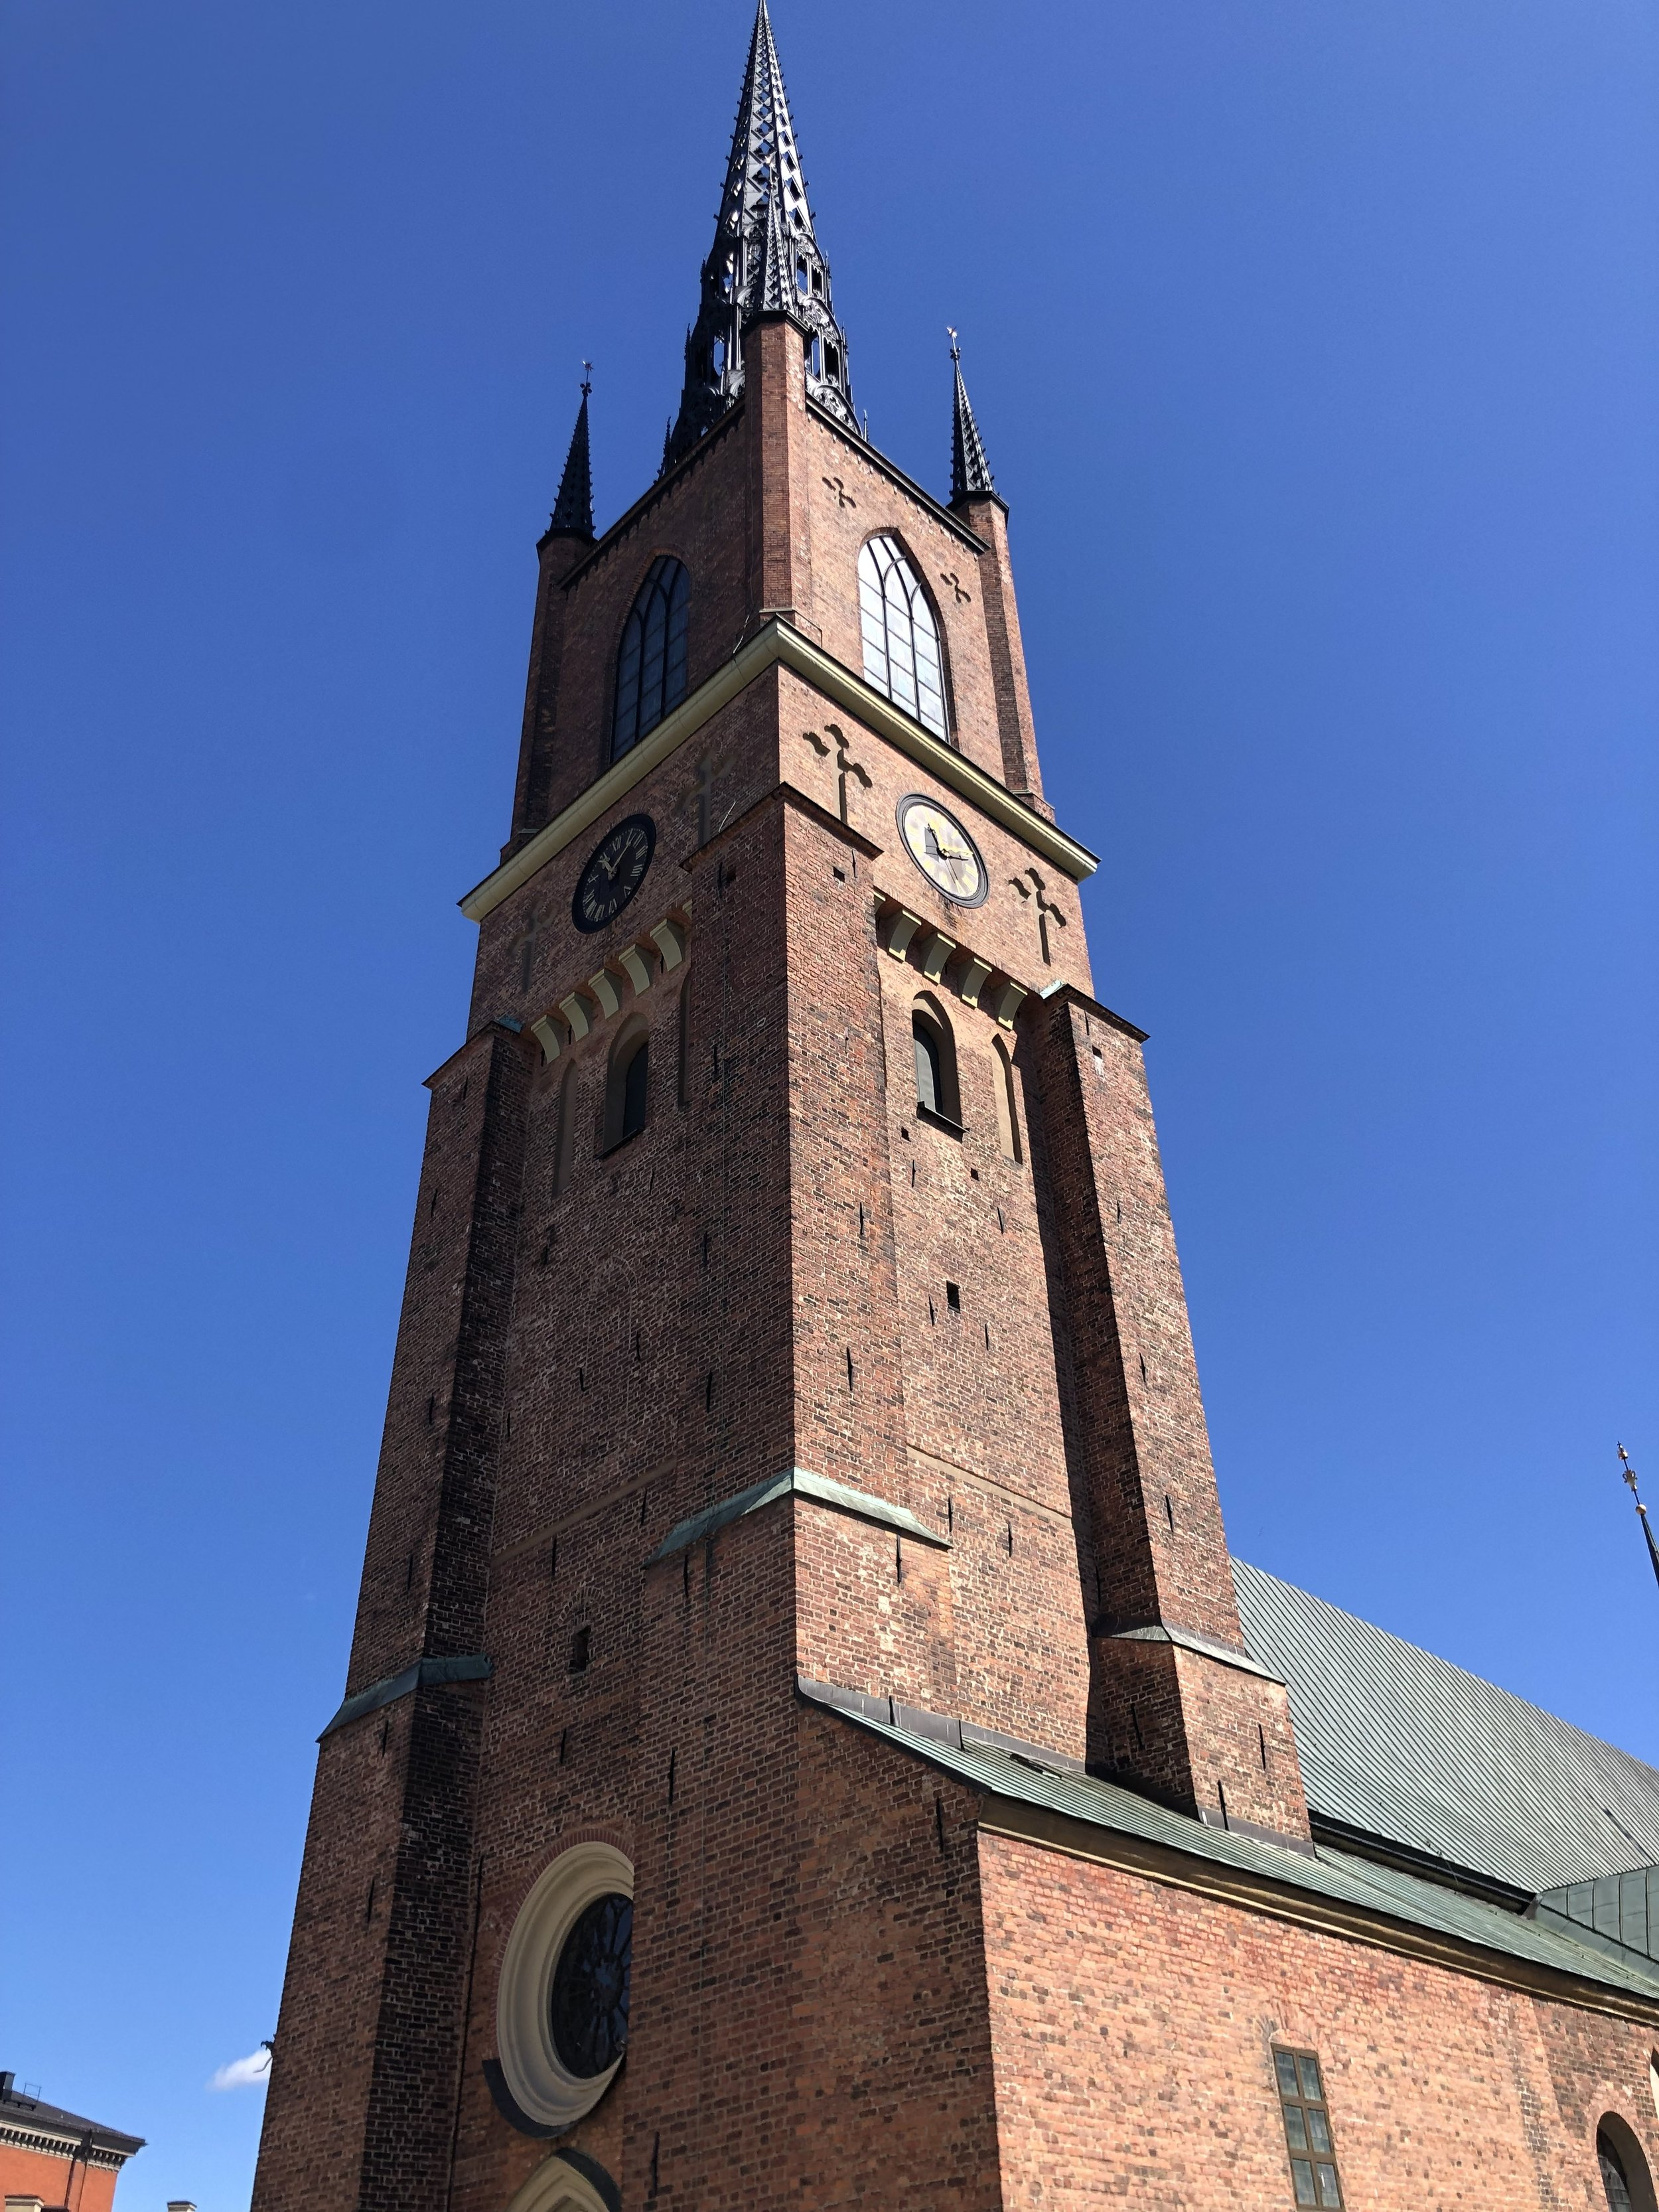 Church, which is not part of the royal palace complex, is where Swedish royalty are buried.